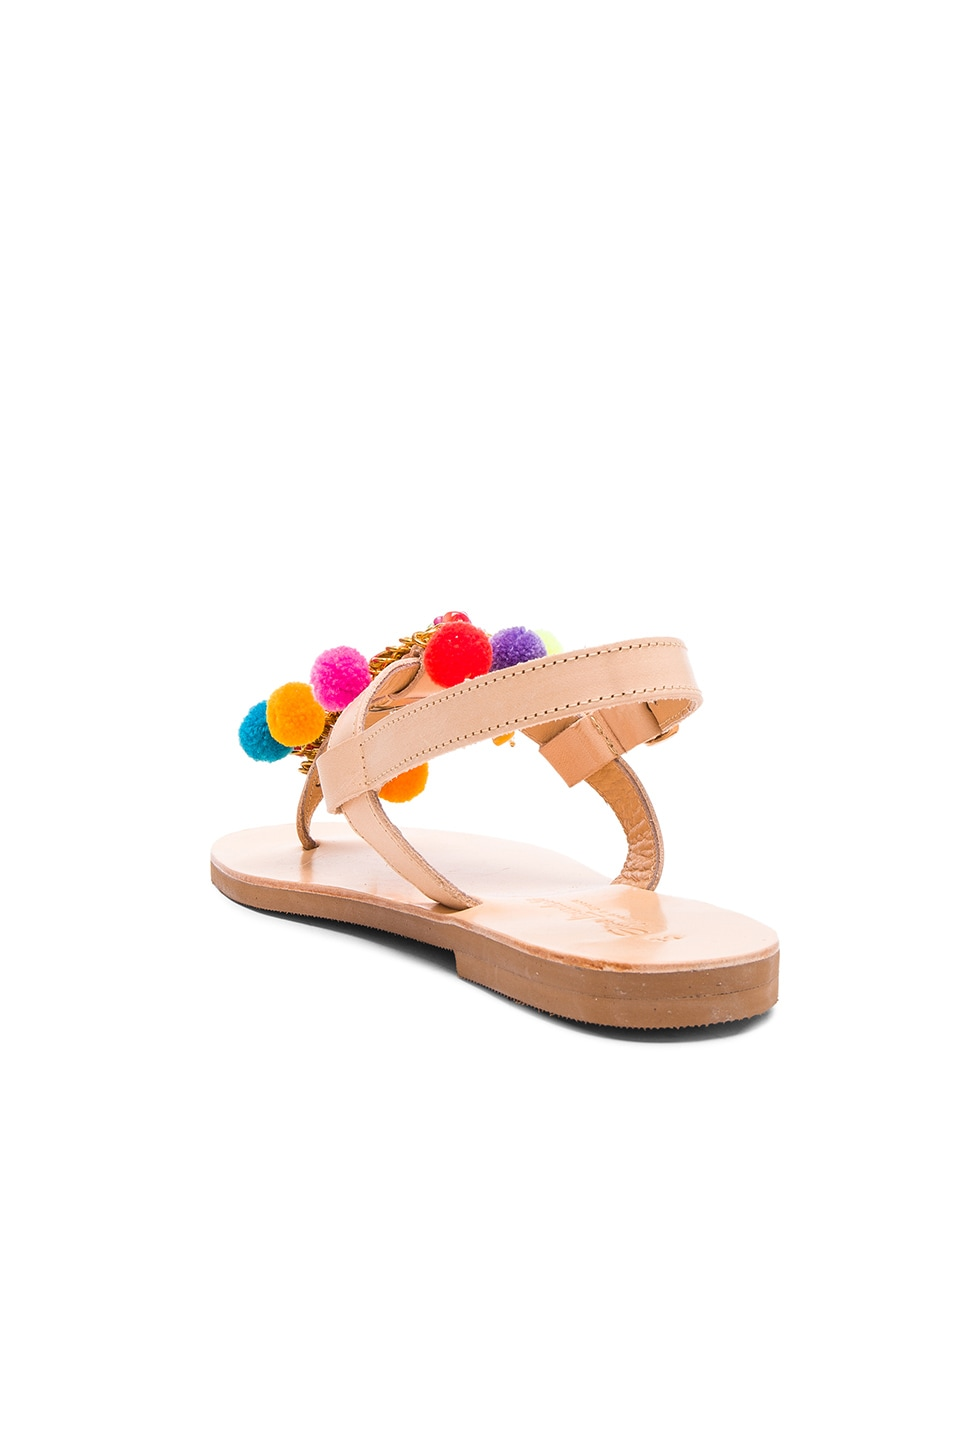 Image 4 of Elina Linardaki Leather Jelly Tots Sandals in Multi